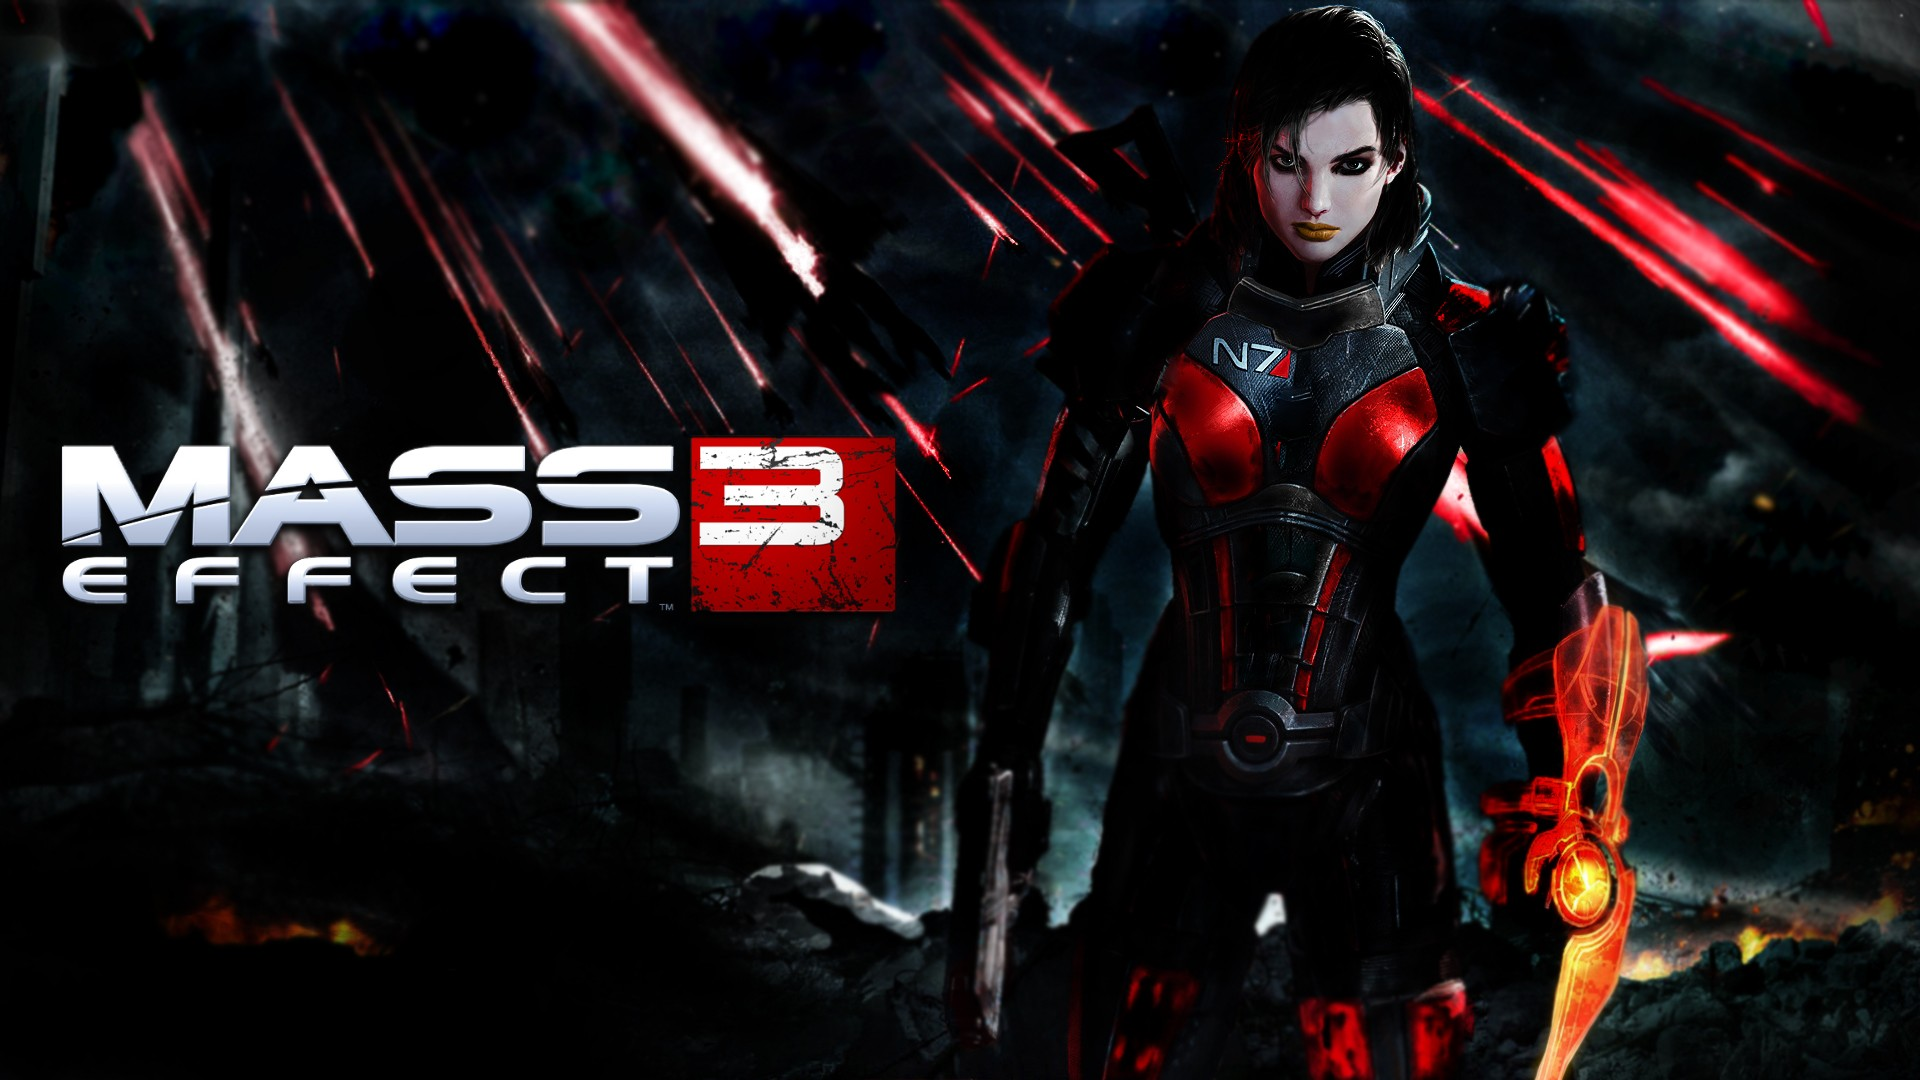 Mass Effect 3 Wallpaper 1920x1080 42880